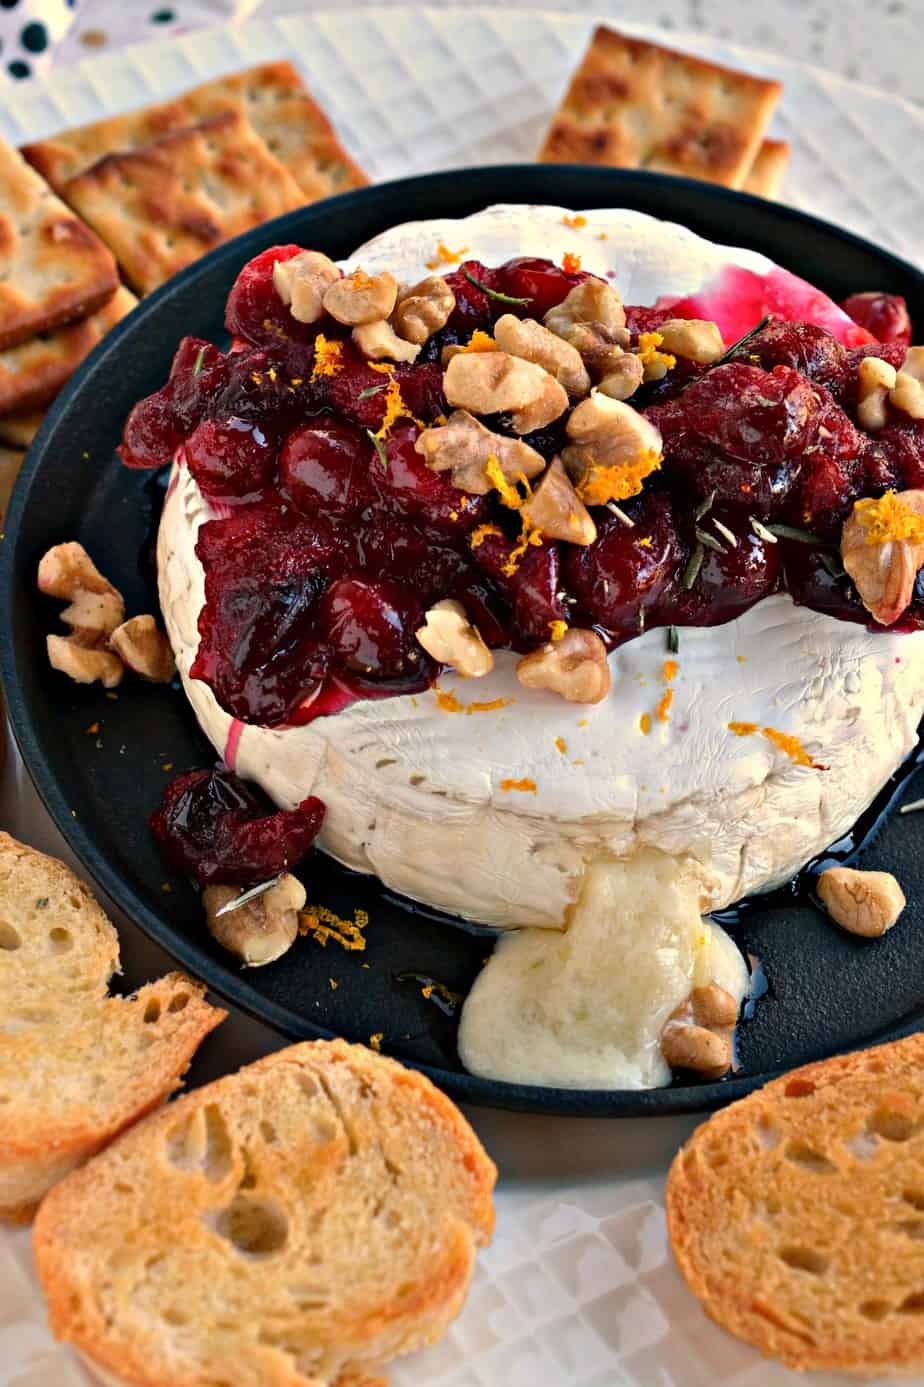 Never in the history of appetizers has there been a more elegant or easier recipe than this Baked Brie with cranberries.